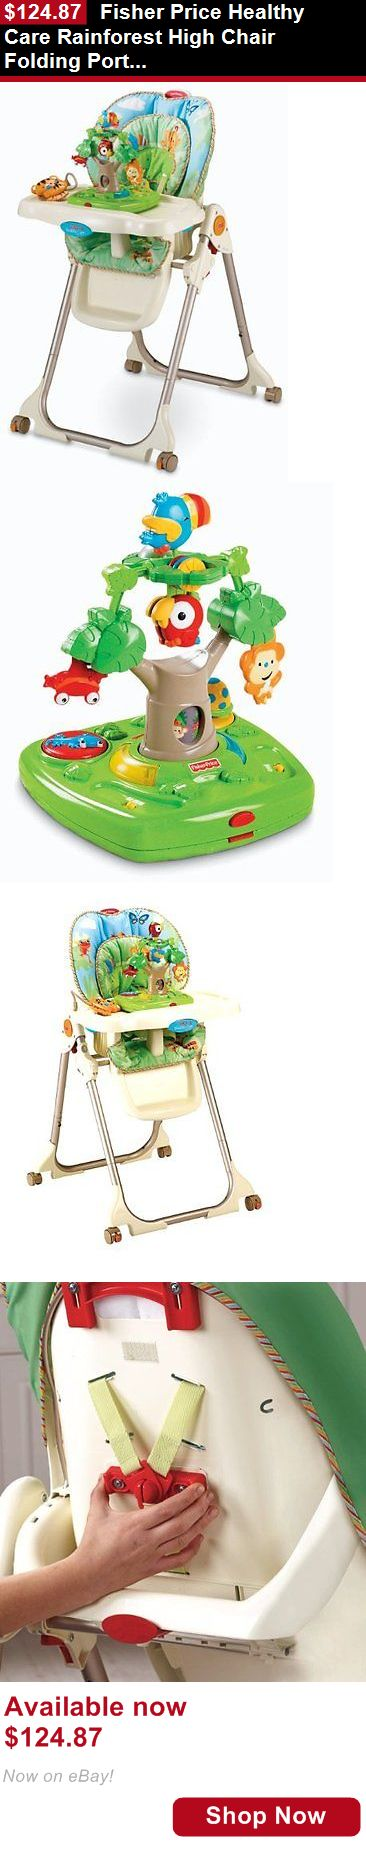 Baby High Chairs: Fisher Price Healthy Care Rainforest High Chair Folding Portable Baby Highchair BUY IT NOW ONLY: $124.87